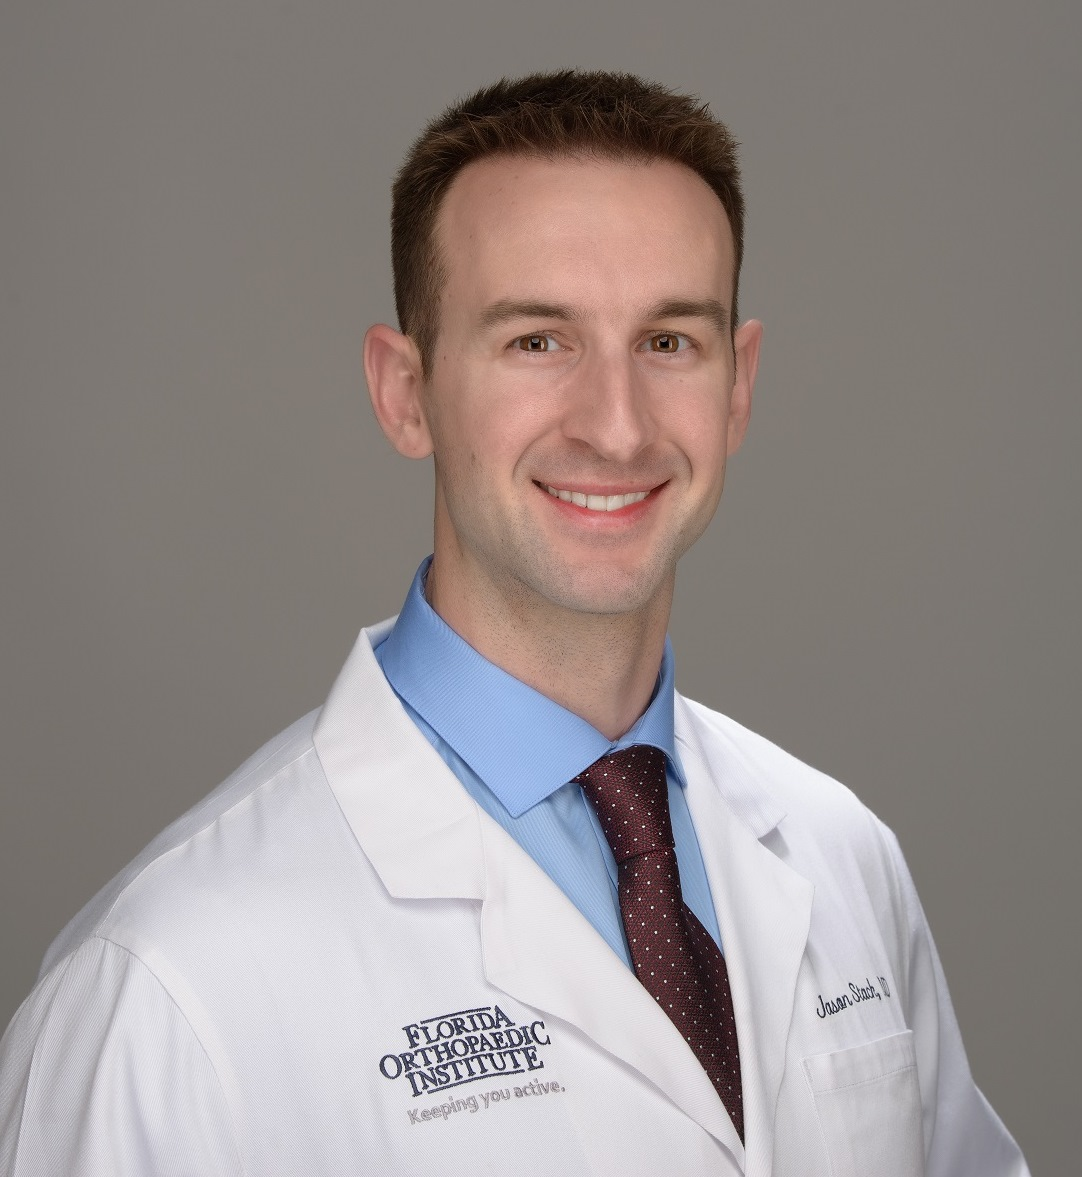 Jason Stack, MD